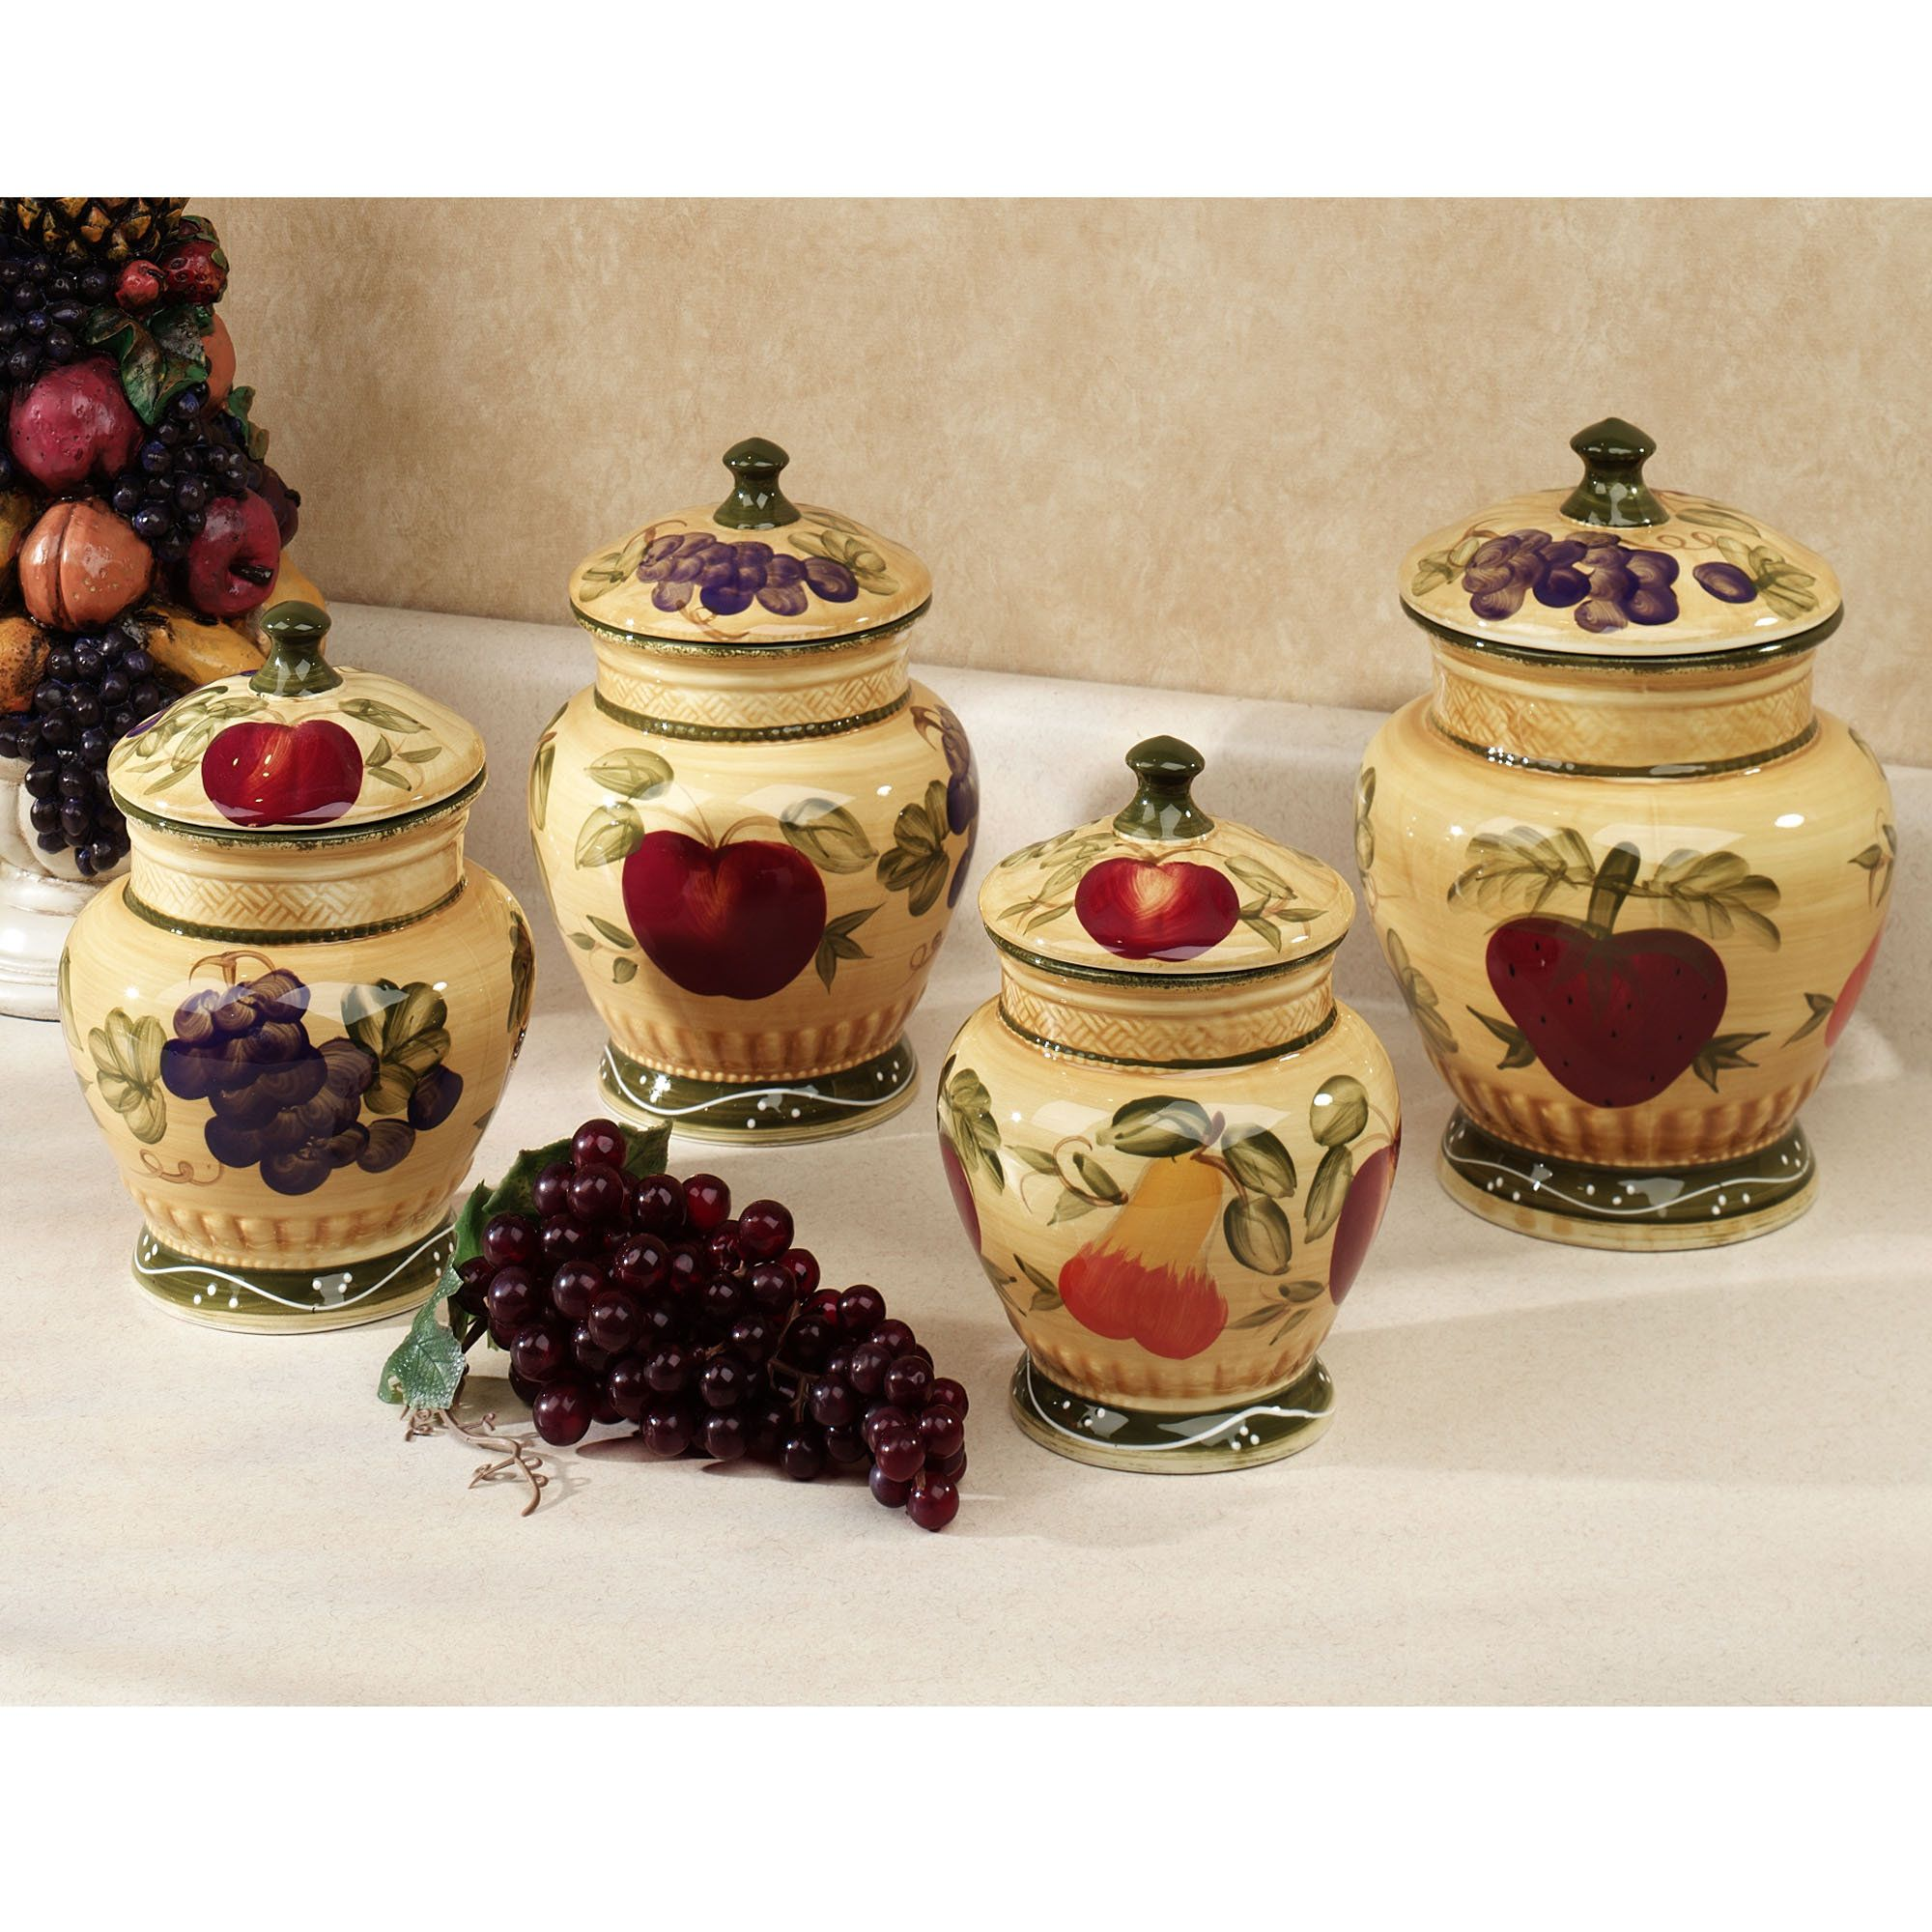 european fruit kitchen canister set the o jays canister cheinco kitchen canisters set of vintage cheinco floral